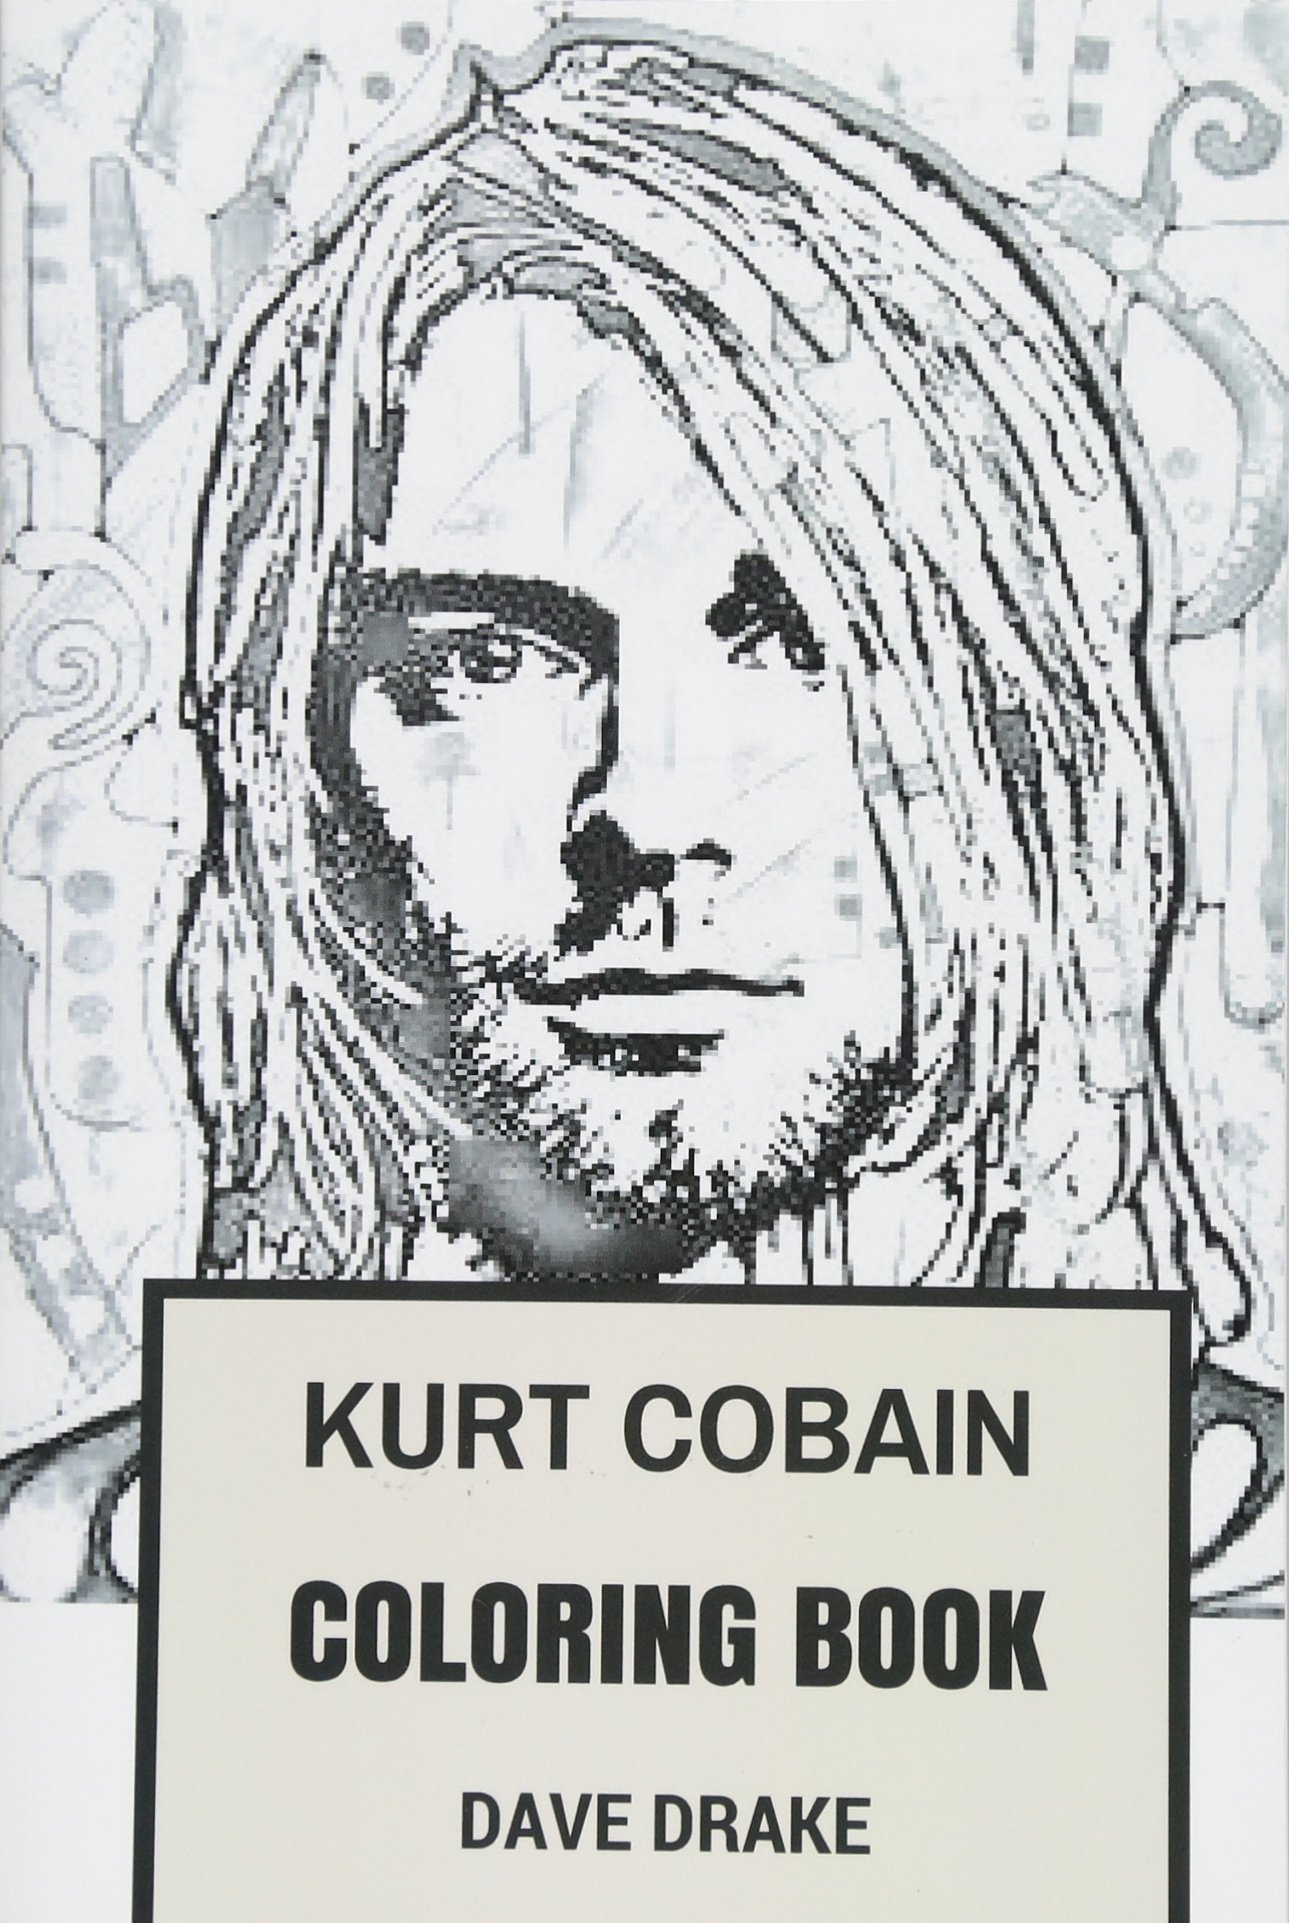 Download Kurt Cobain Coloring Book: Epic Vocal and the Leader of Grunge Legends Nirvana Art Inspired Adult Coloring Book (Coloring Books for Adults) pdf